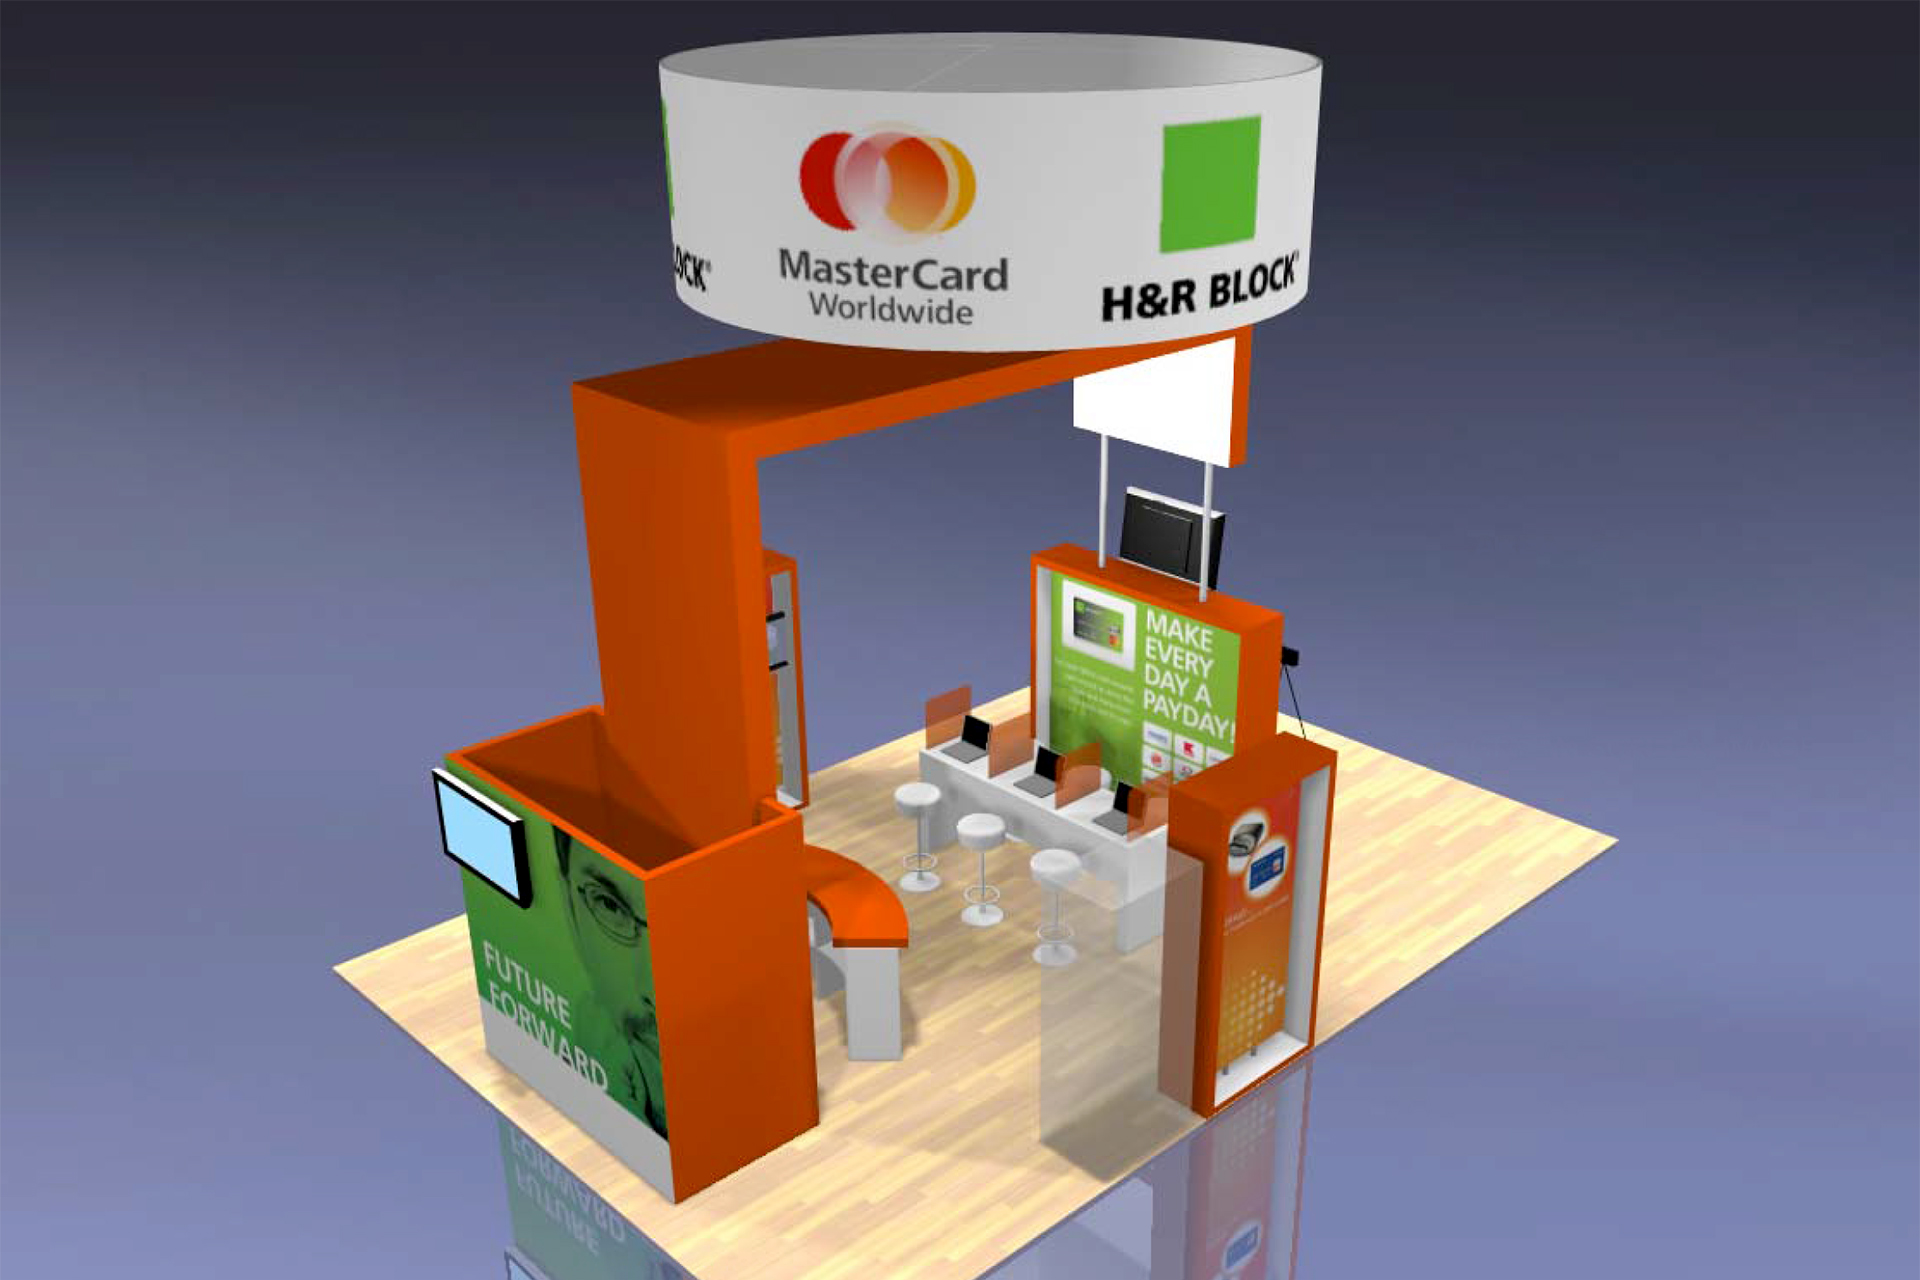 """H&R Block Trade Show Booth: Conceived for H&R Block's annual convention, our theme of """"Tomorrow's Tools for Today's Clients"""" was realized through a forward-thinking booth design, product videos, mobile app demonstrations, and more"""